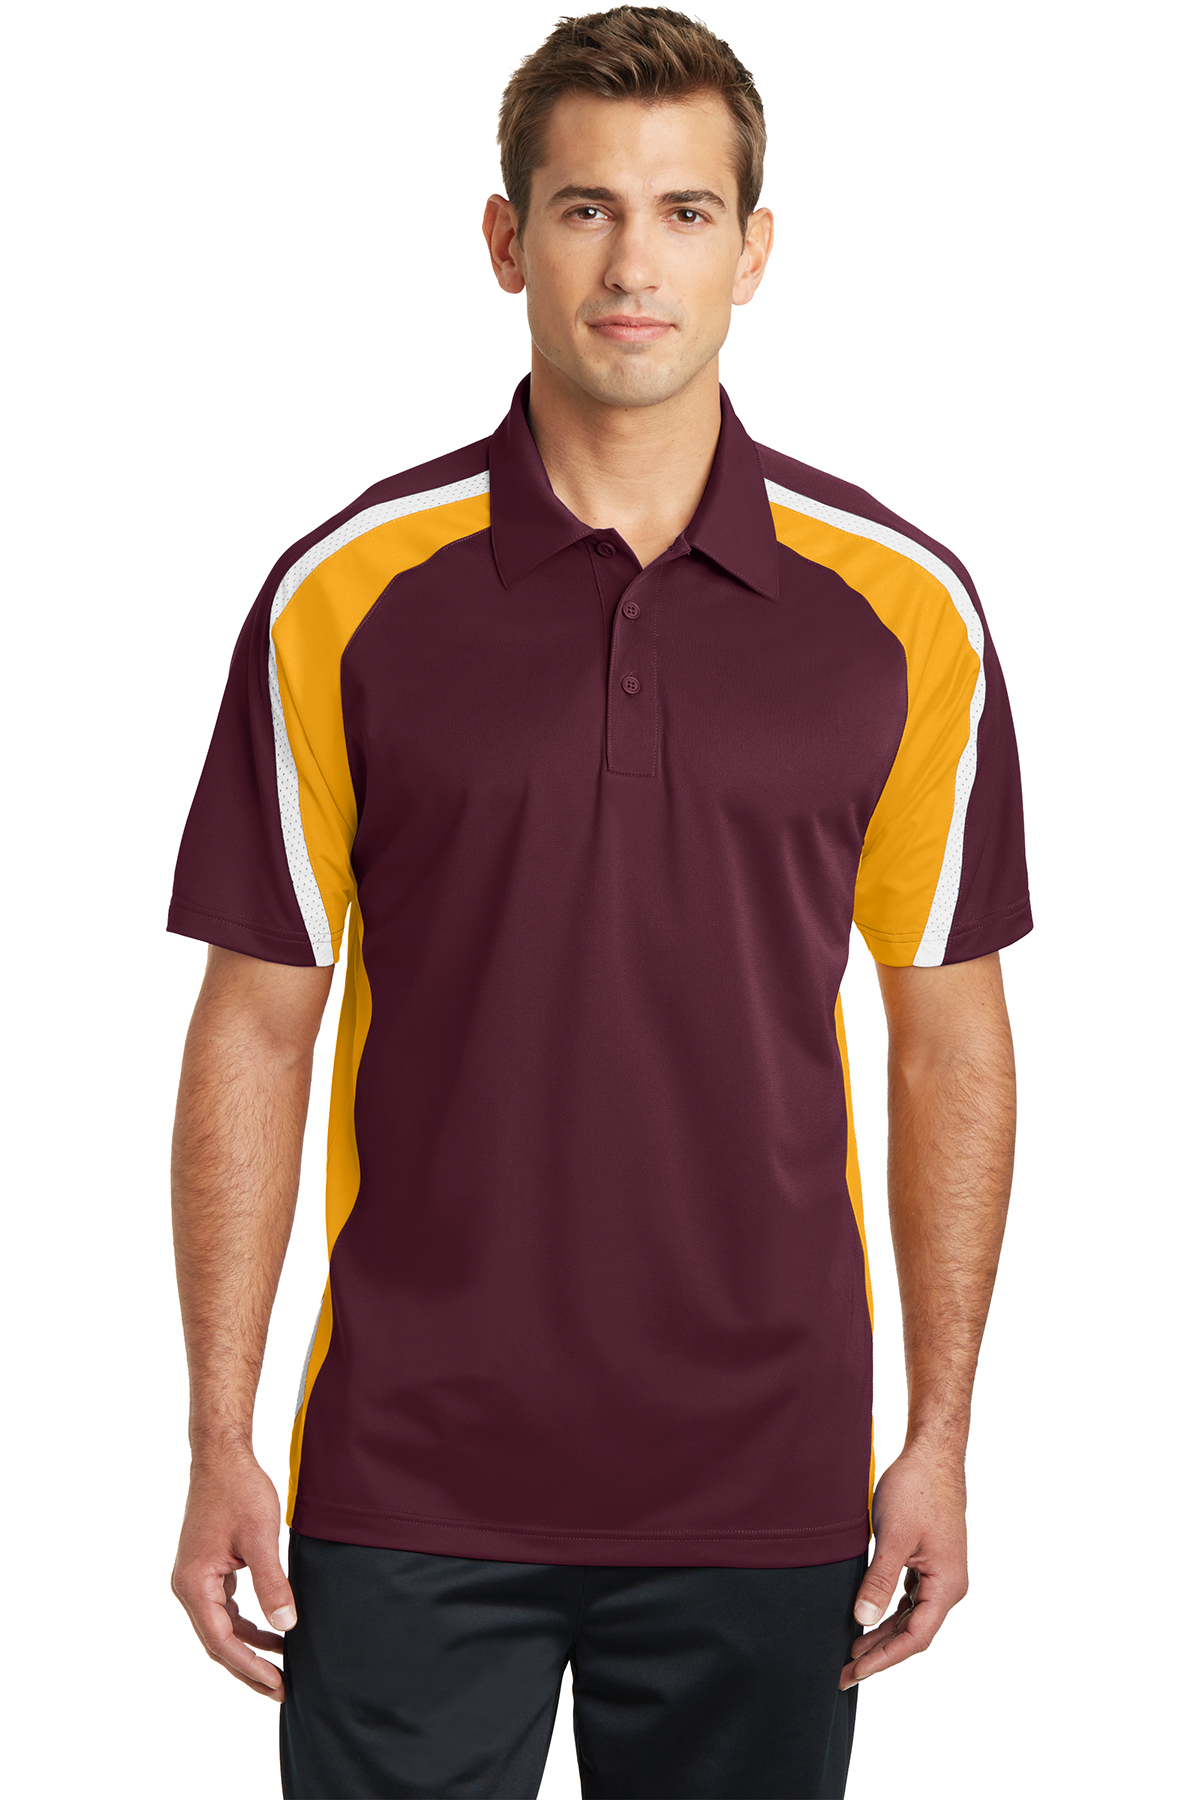 click to view Maroon/Gold/White